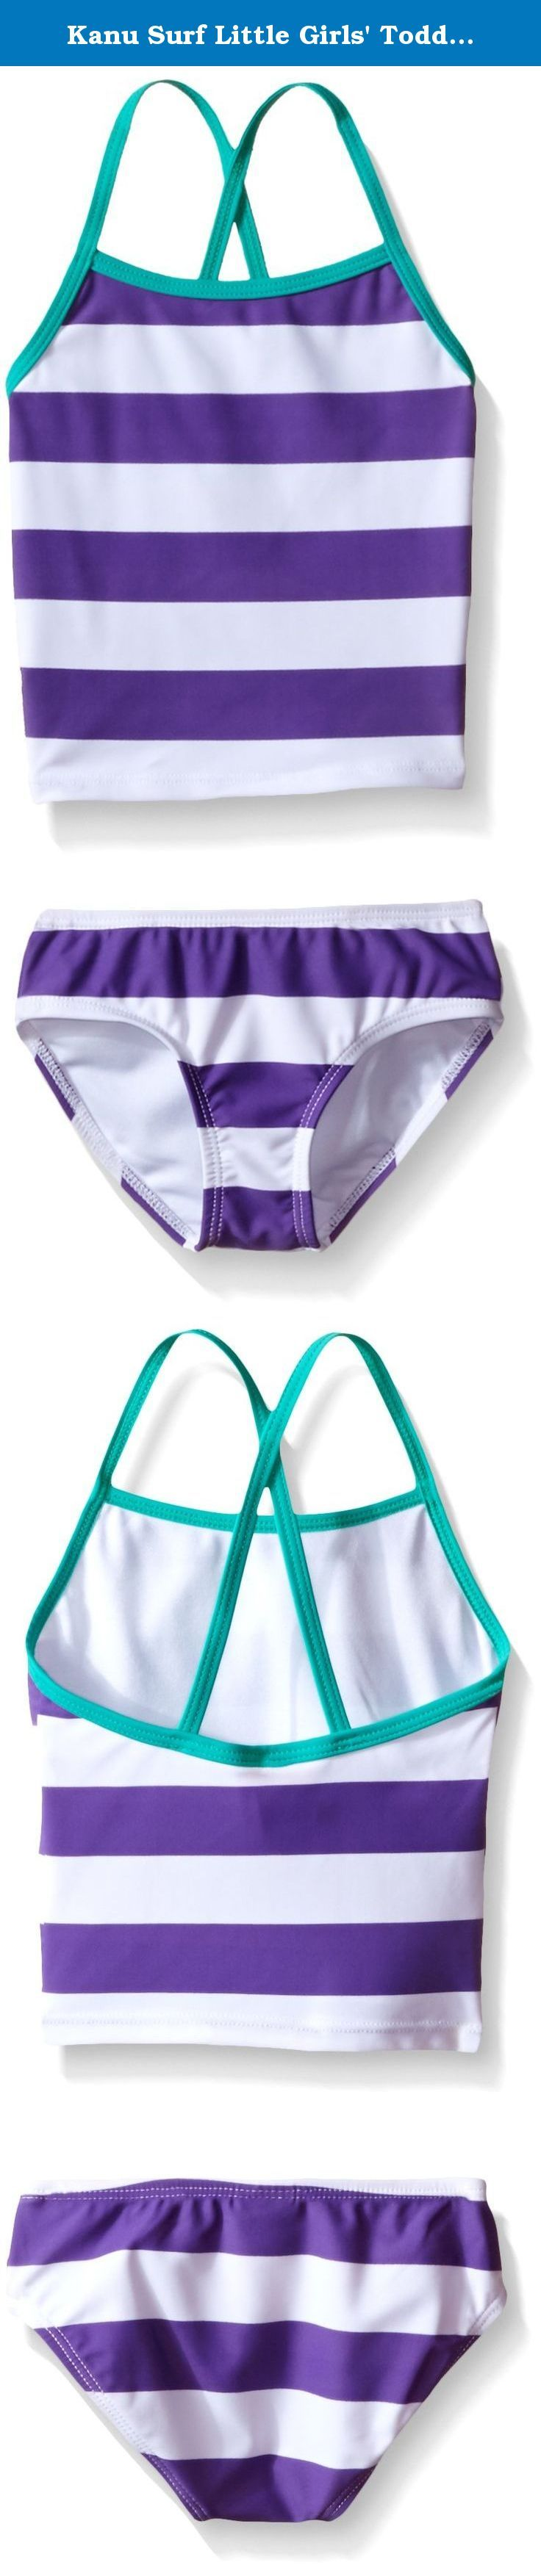 Kanu Surf Little Girls' Toddler Layla Stripe Tankini Swimsuit, Purple, 3T. Kanu Surf presents our newest swim styles yet. Kanu, a surf and swim lifestyle brand, is well known for great prints and colors along with high quality functional apparel for the whole family. All of our swimwear is made with a high quality nylon/spandex tricot fabric and are lined both front and back. All of our prints are available in 1 or 2 piece options. Kanu swimwear is great for the active athlete as well as…